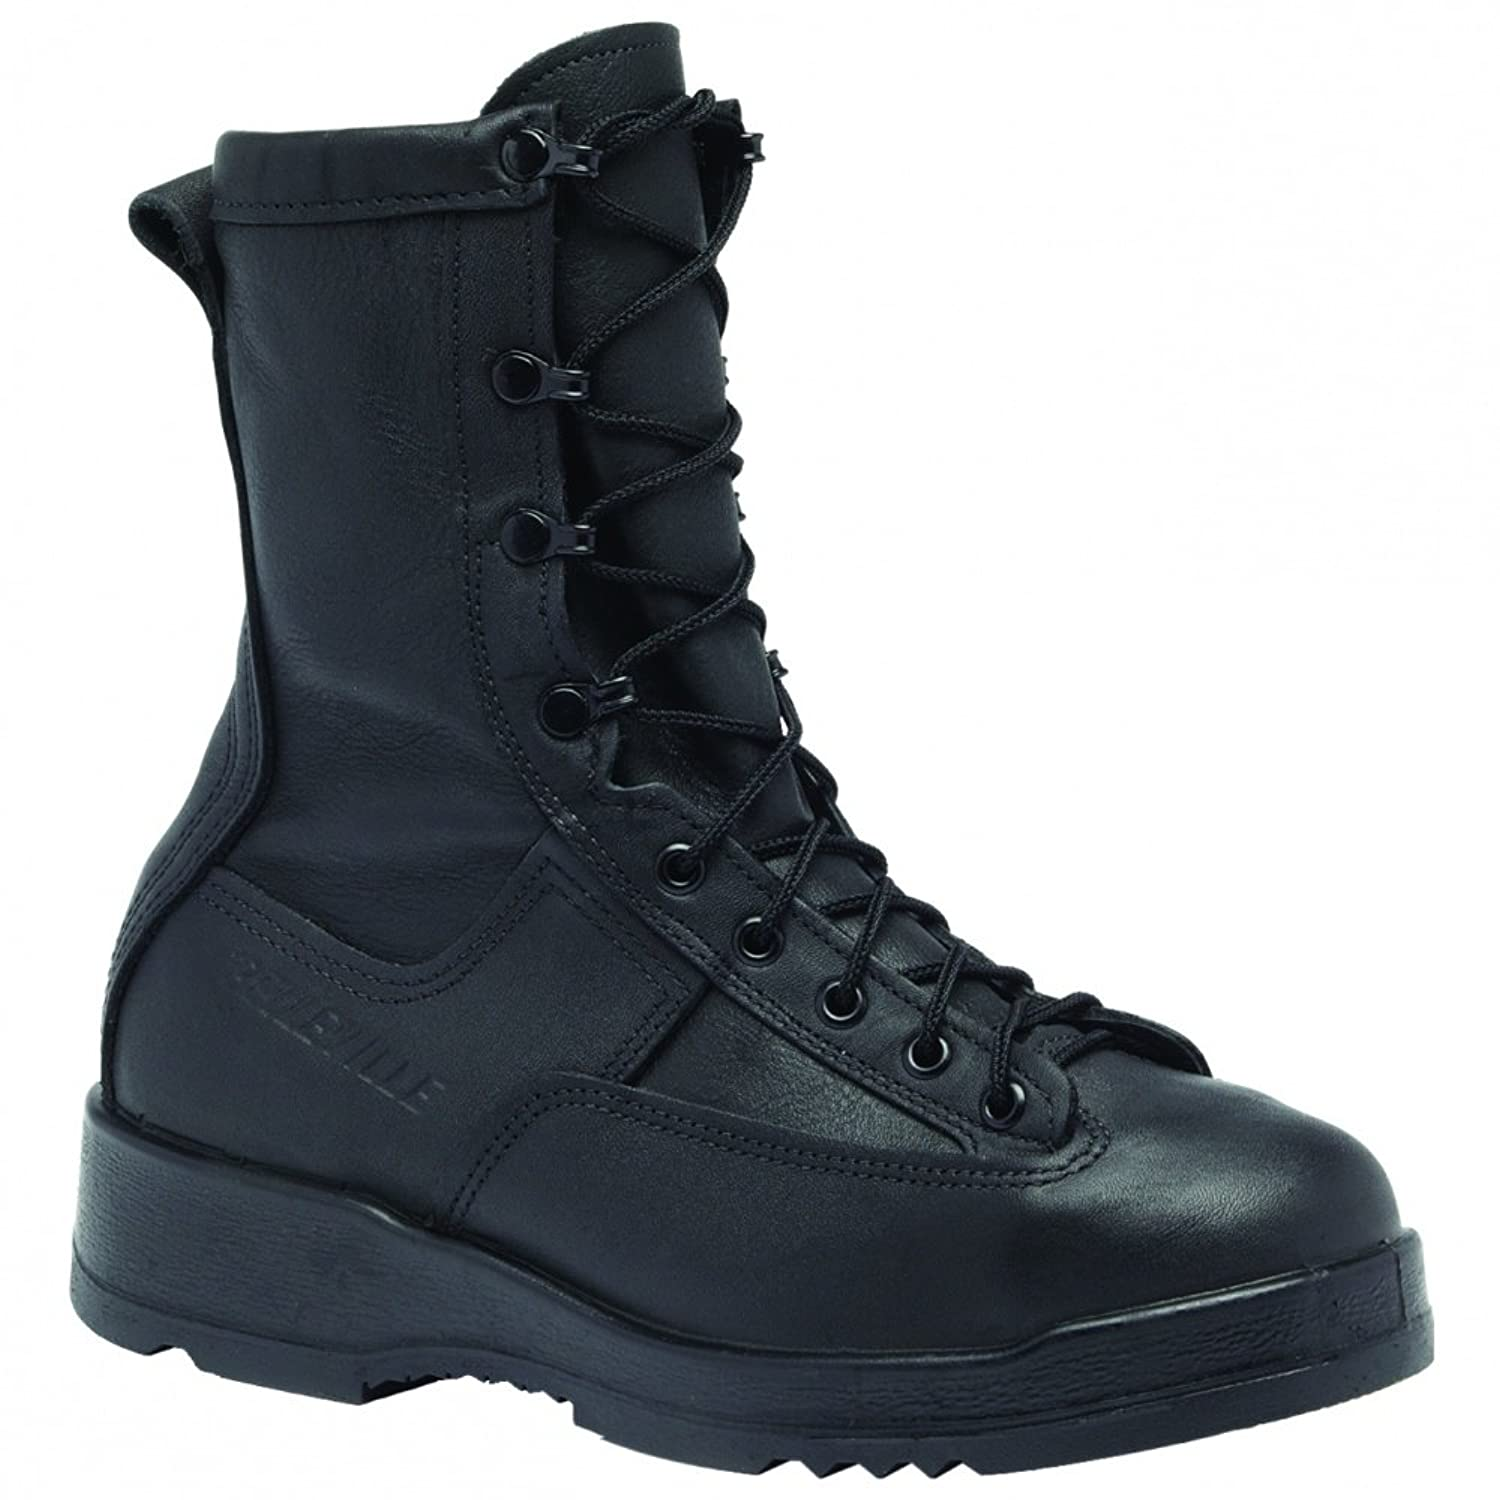 Belleville 880ST Waterproof Steel Toe Flight and Flight Deck Boot, Black